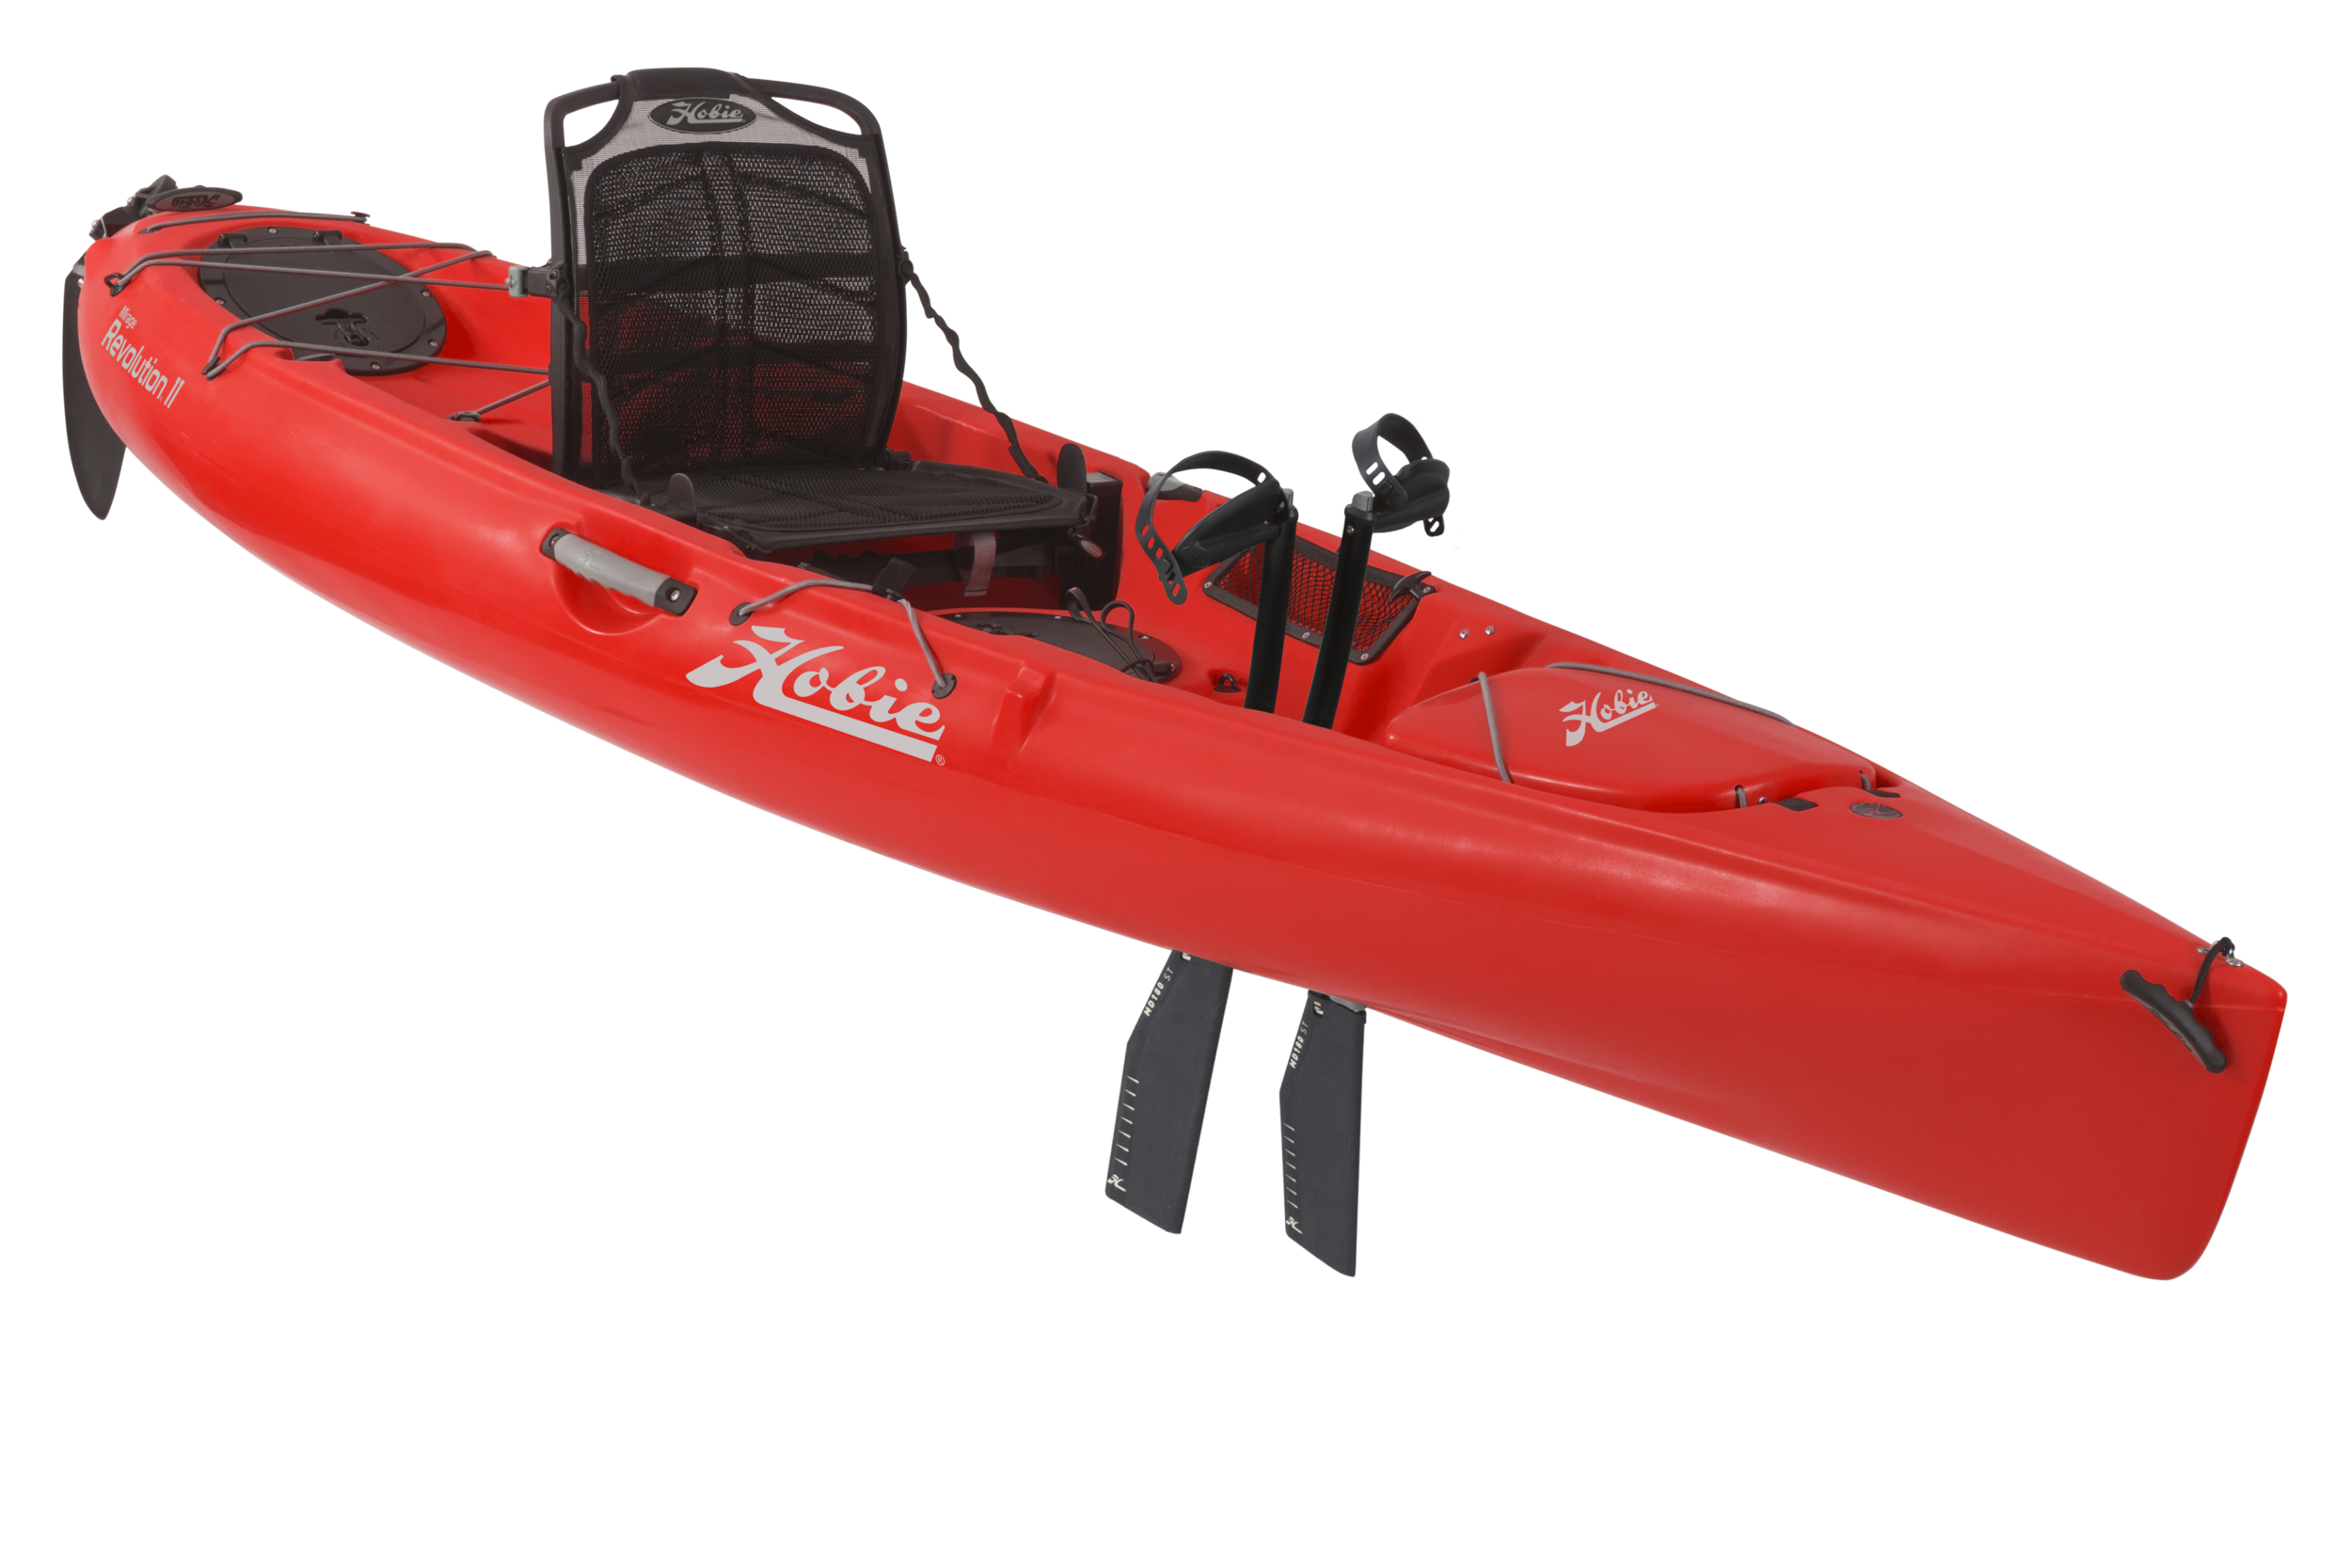 """Mirage Revolution 11   The sleek """"Revo 11"""" is lightning fast off the line, a MirageDrive powered pocket rocket that'll turn in its own length. Performance in a tidy 11-ft. package, easy to transport and store."""